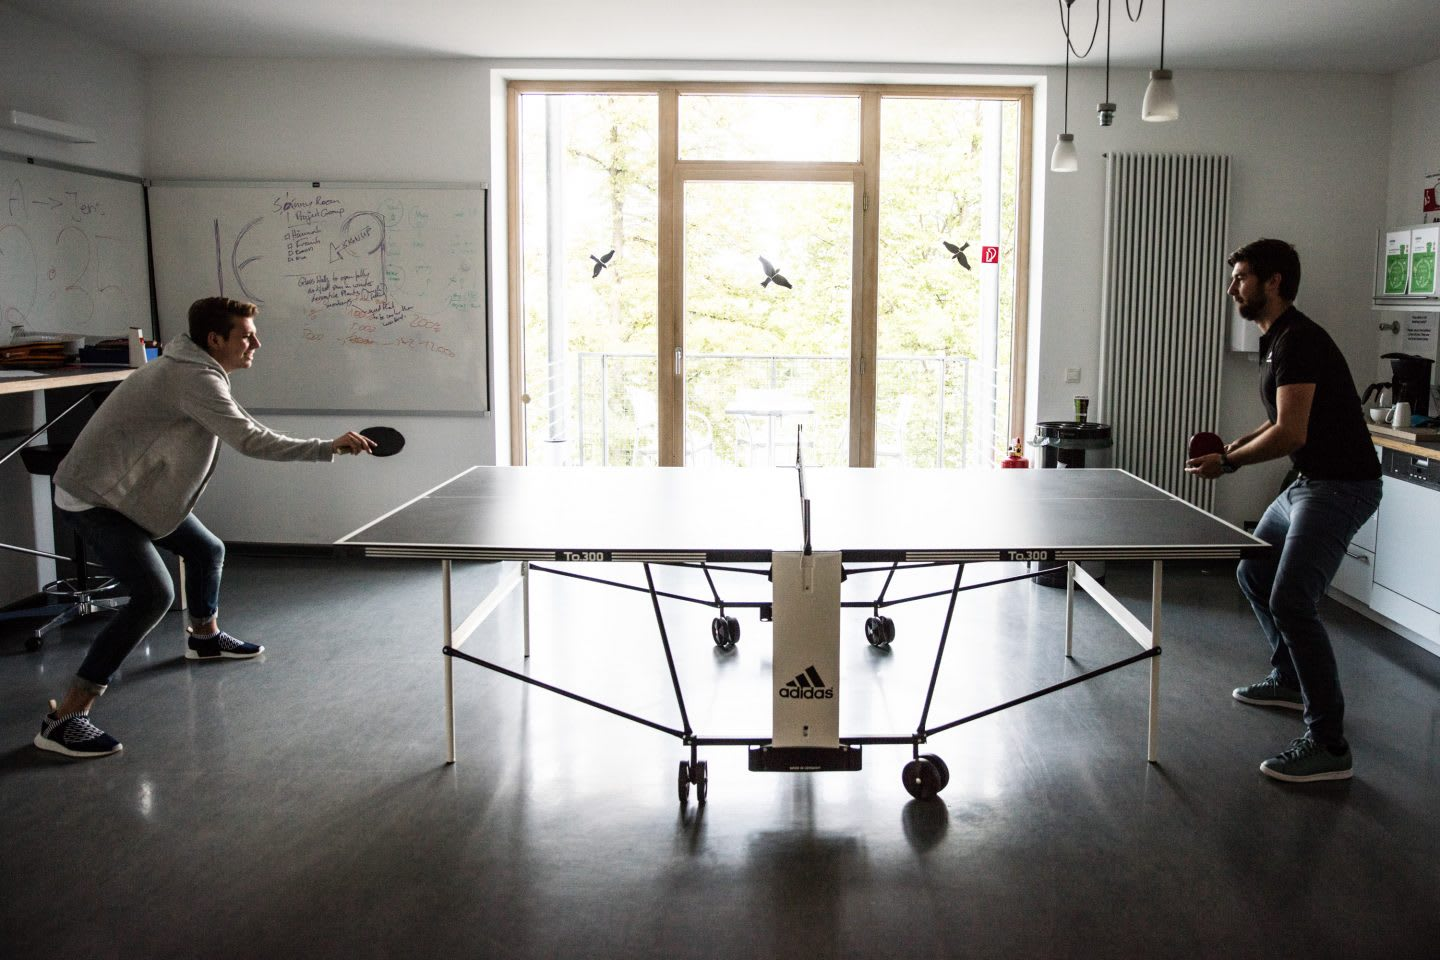 Two colleagues play a round of table tennis inside before starting their work day.